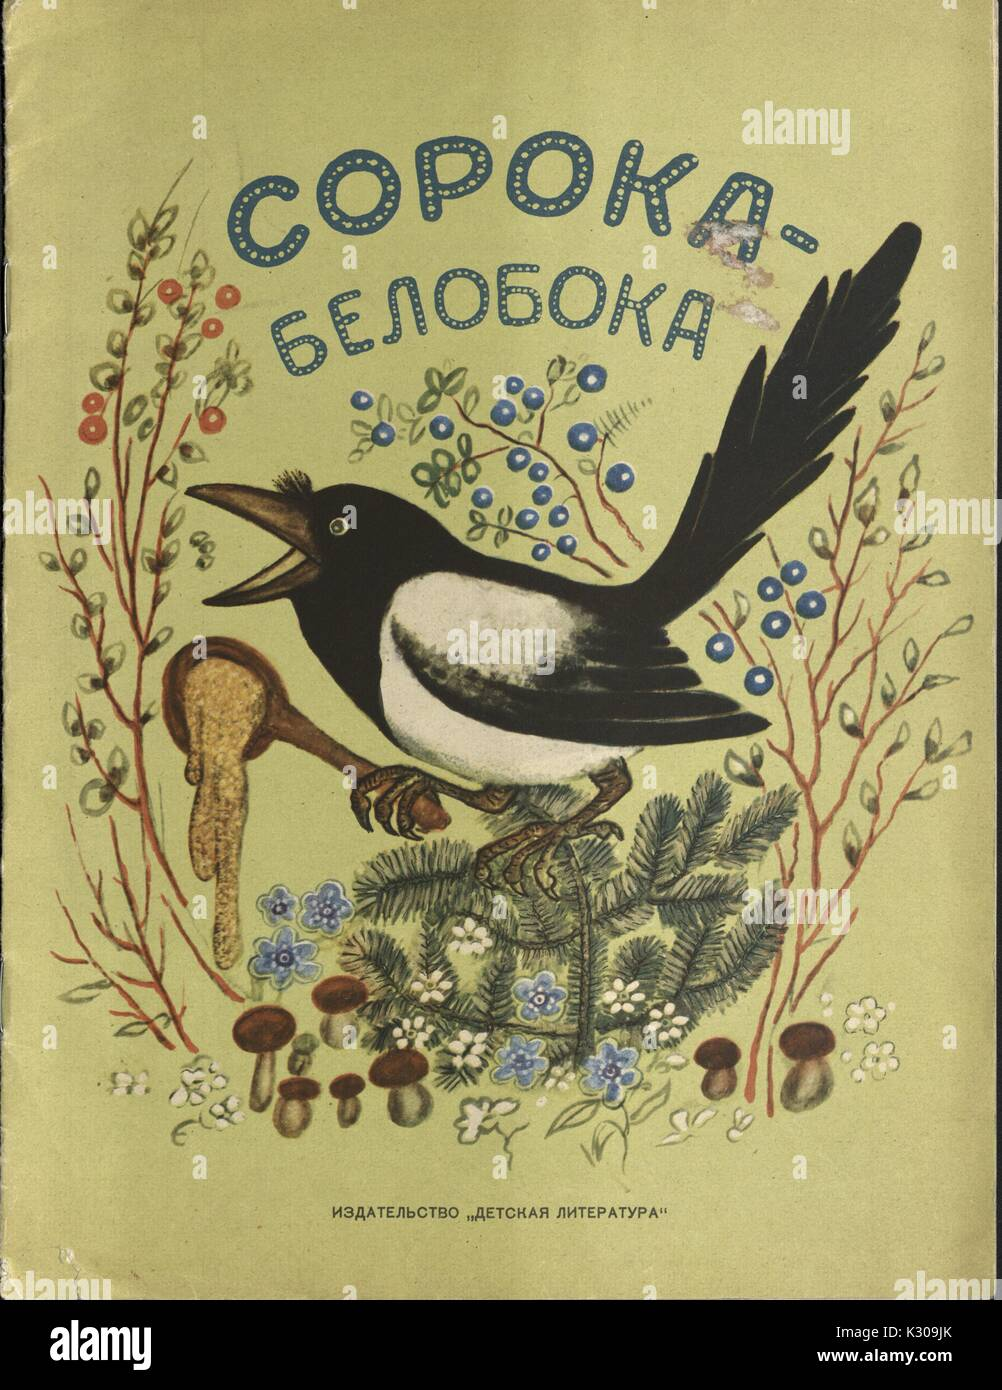 A cover of a Russian Fairy Tale entitled 'The White-Sided Magpie' with a bird surrounded by branches and mushrooms and flowers published by Detskaya Literatura, 1950. - Stock Image